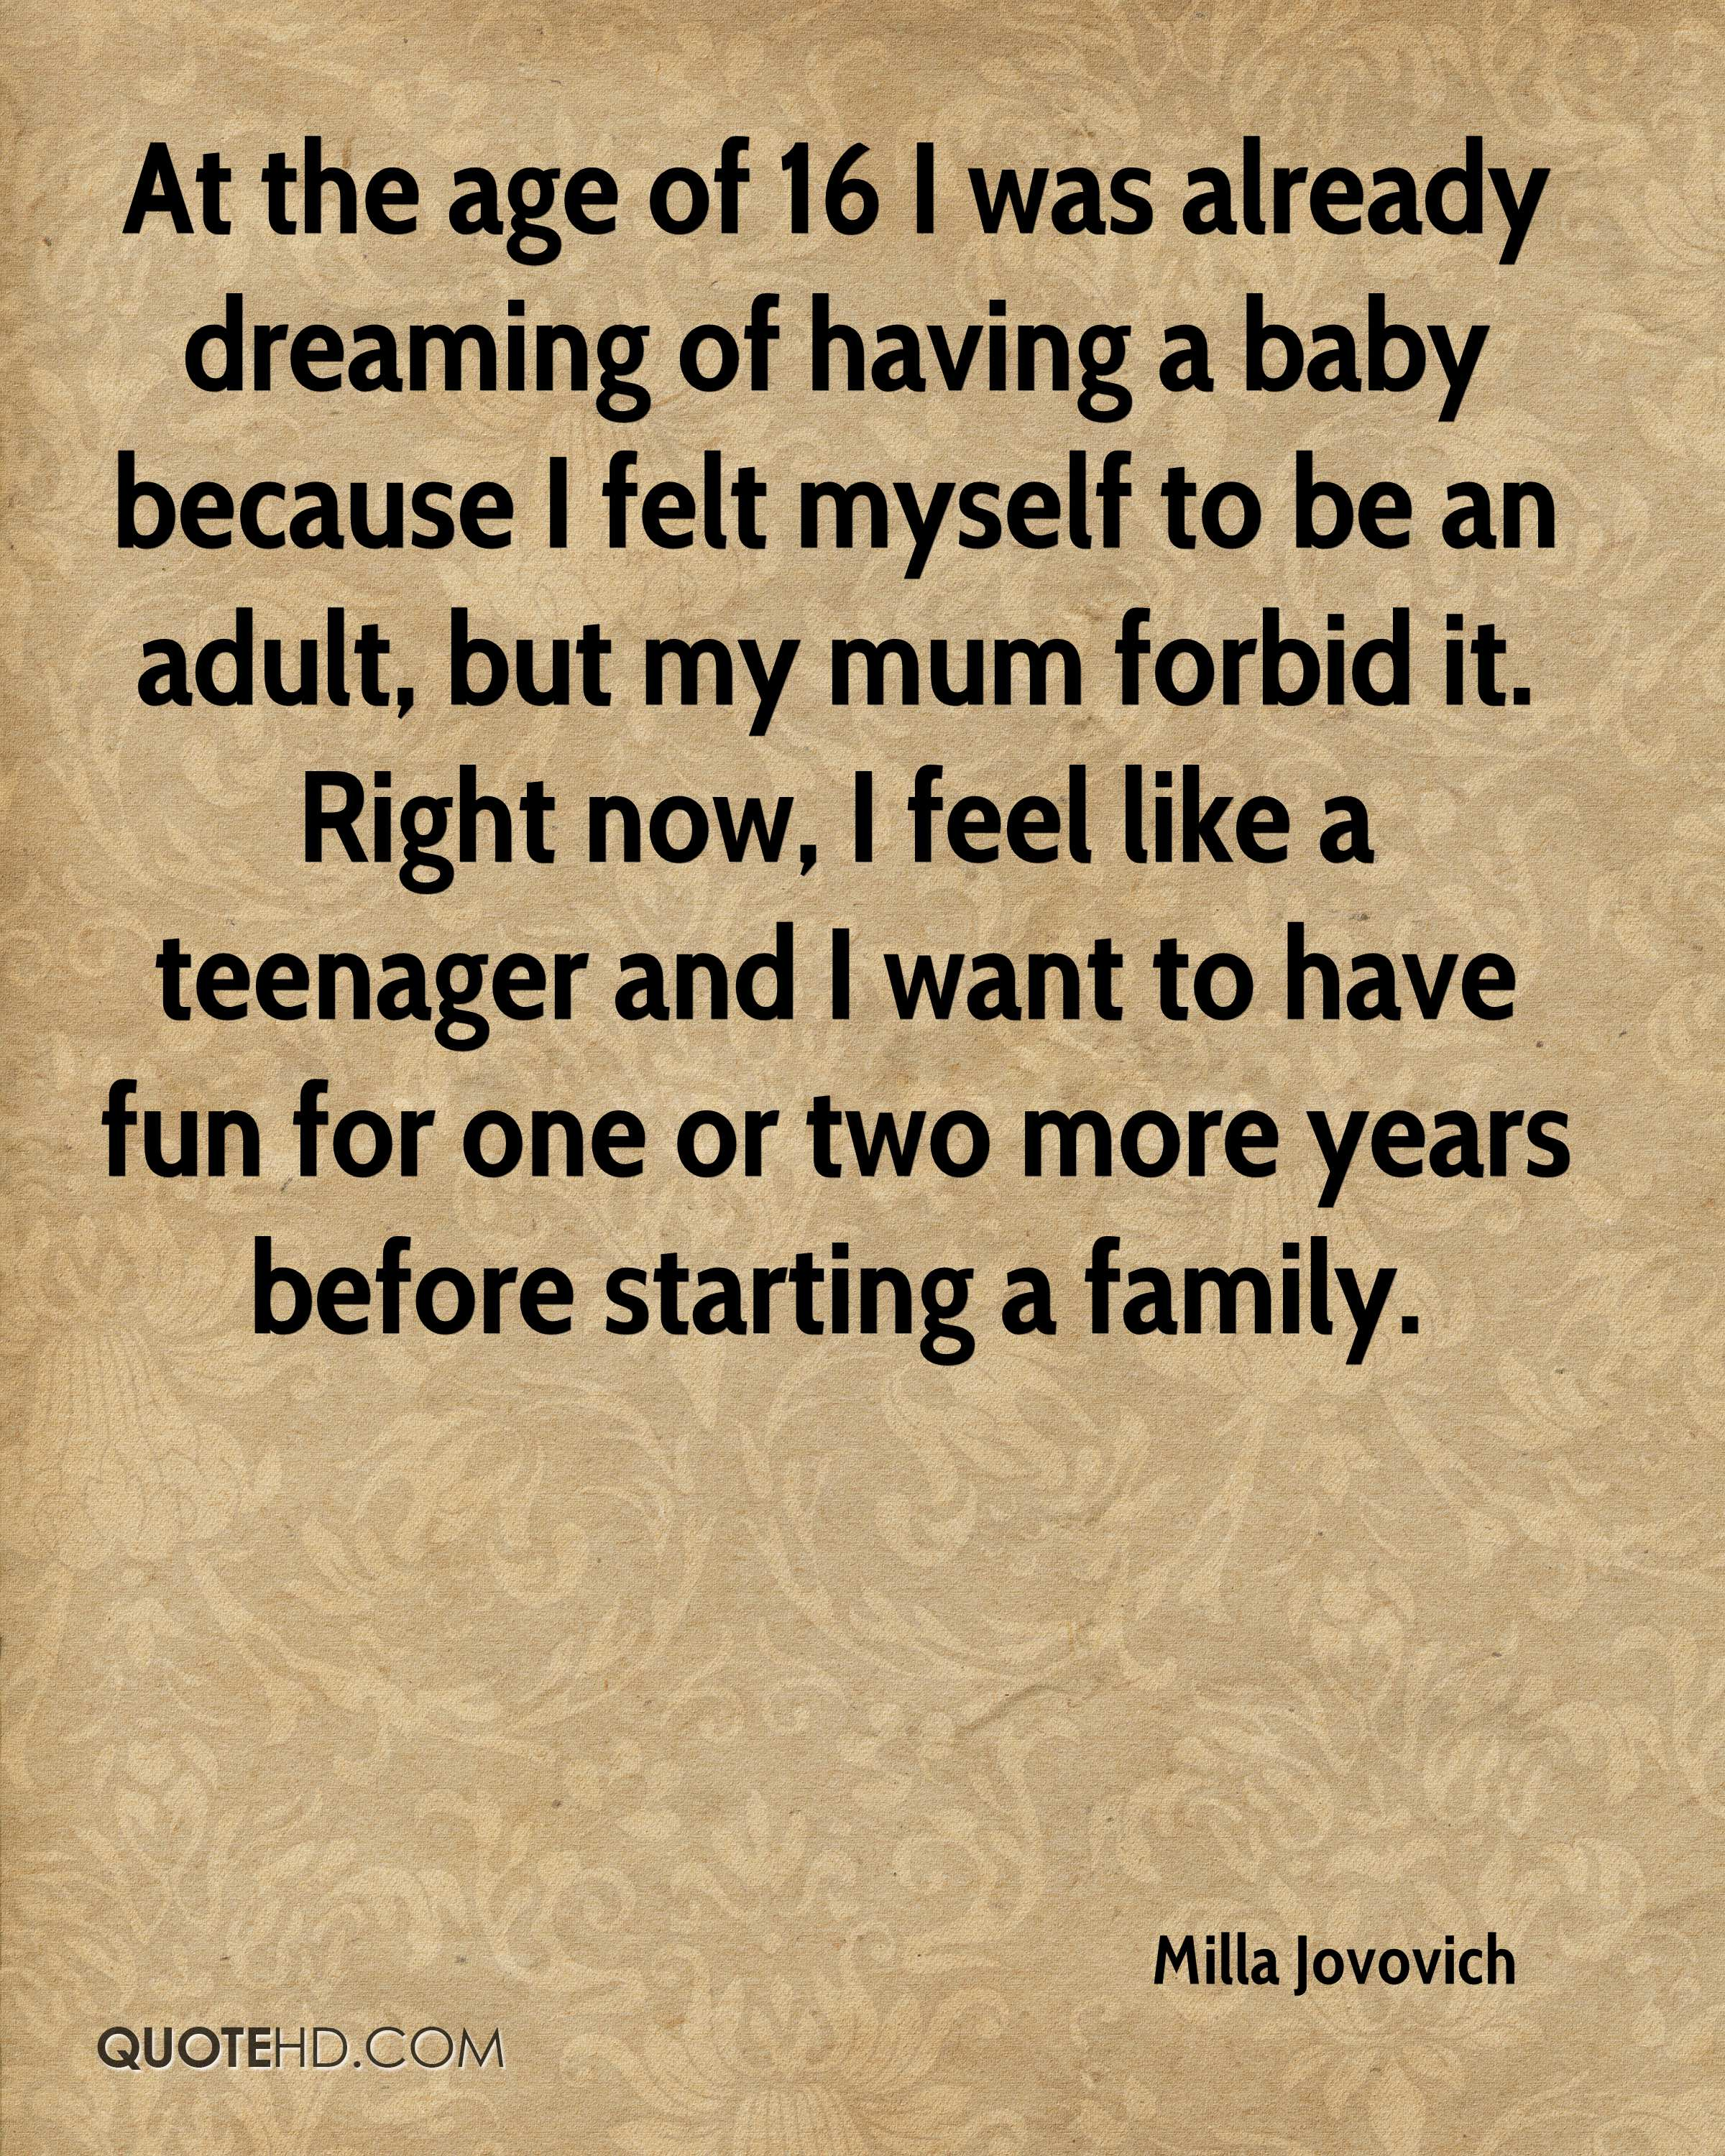 At the age of 16 I was already dreaming of having a baby because I felt myself to be an adult, but my mum forbid it. Right now, I feel like a teenager and I want to have fun for one or two more years before starting a family.